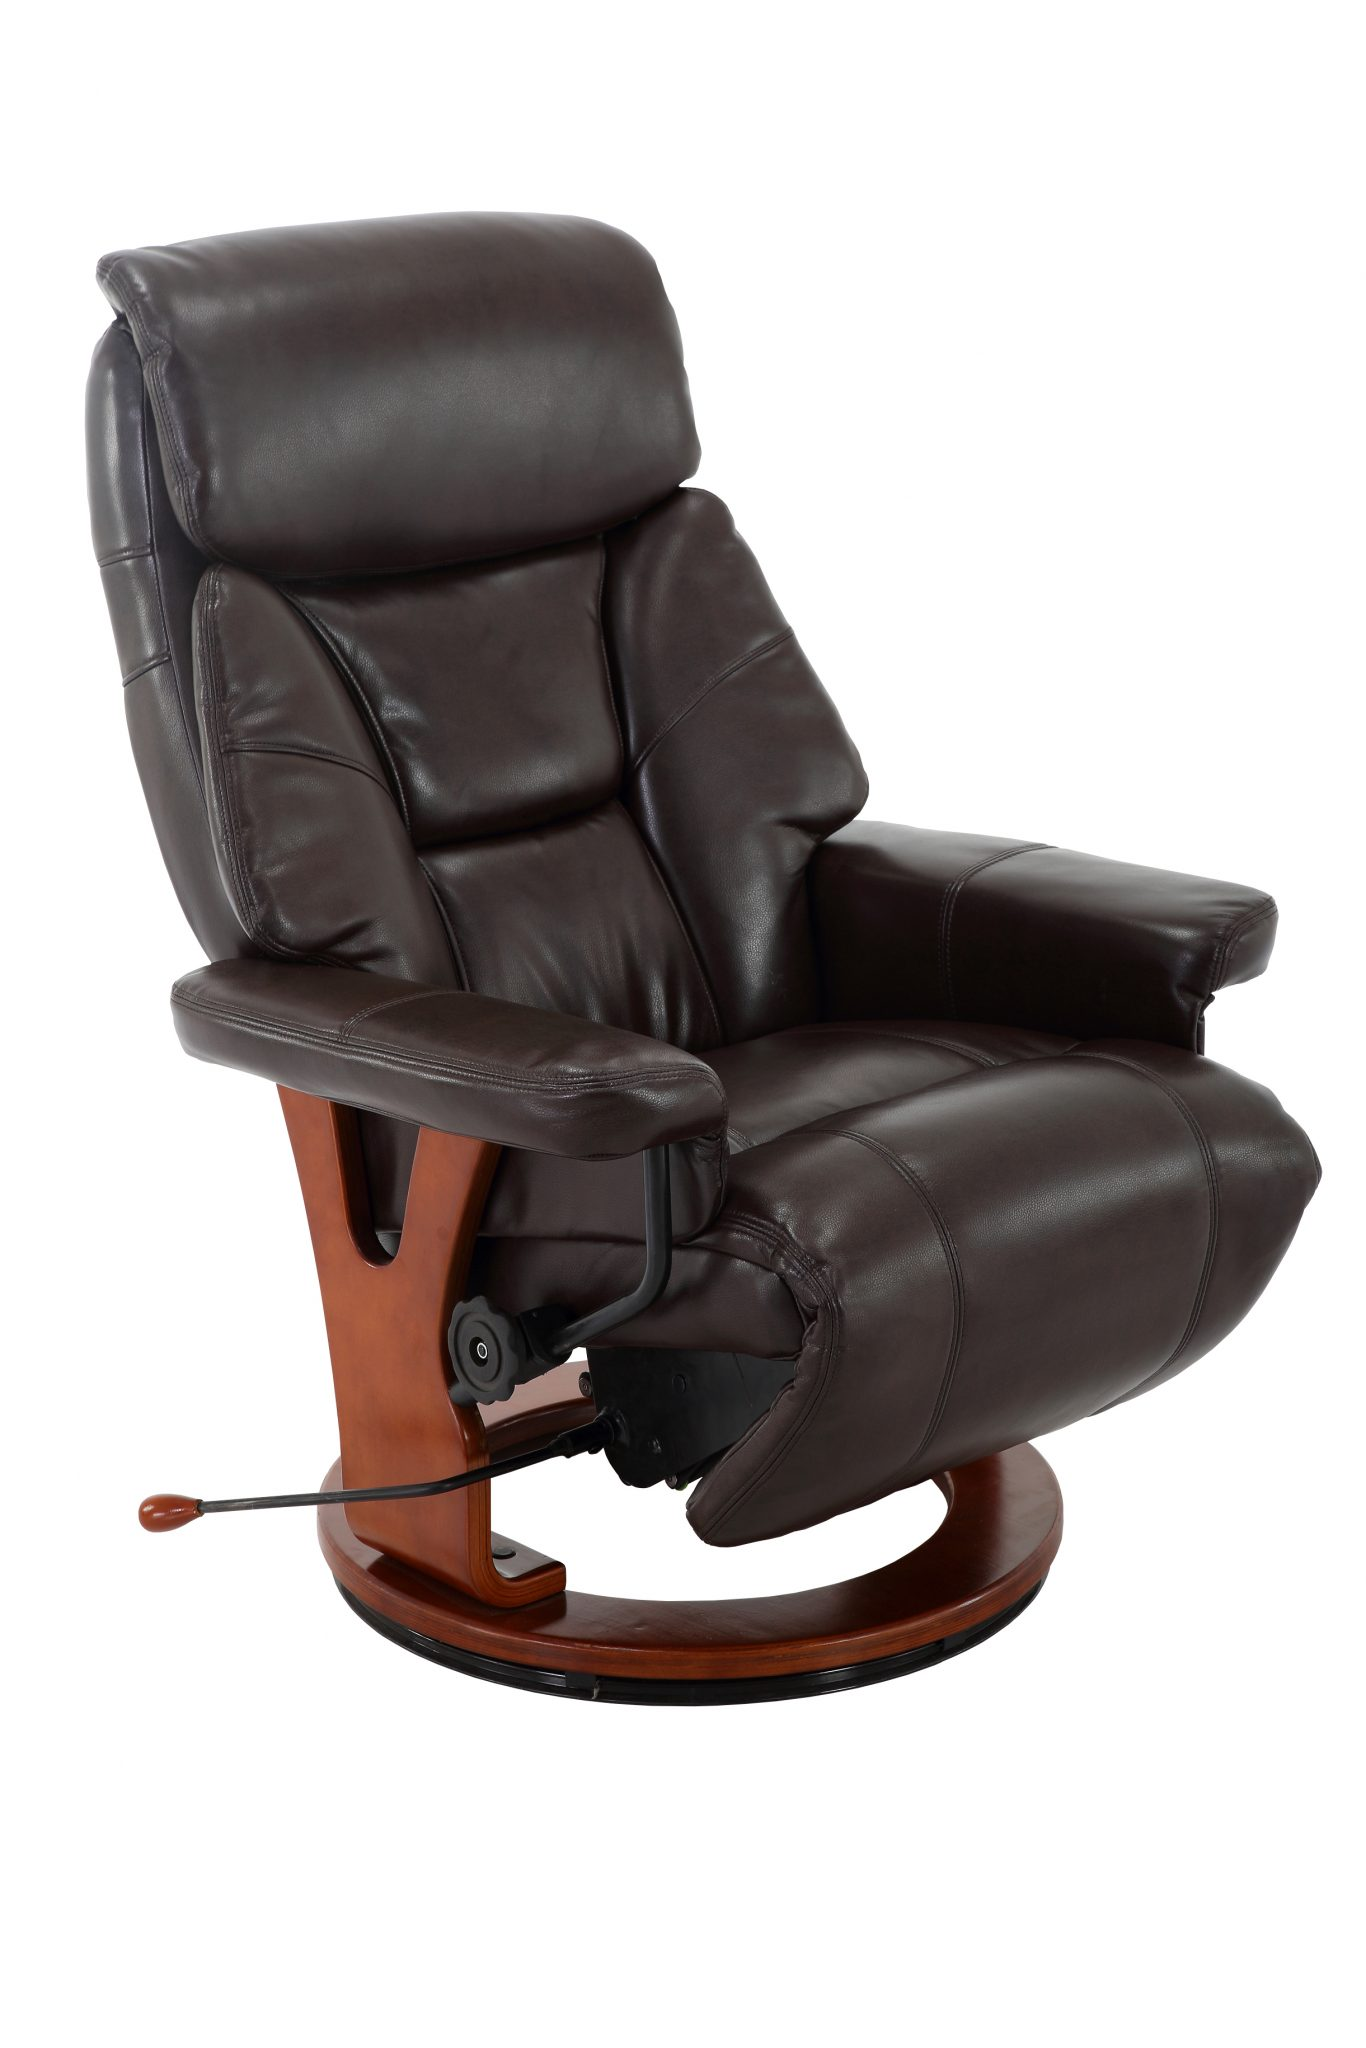 Bismark Recliner In Angus Air Leather Mac Motion Chairs